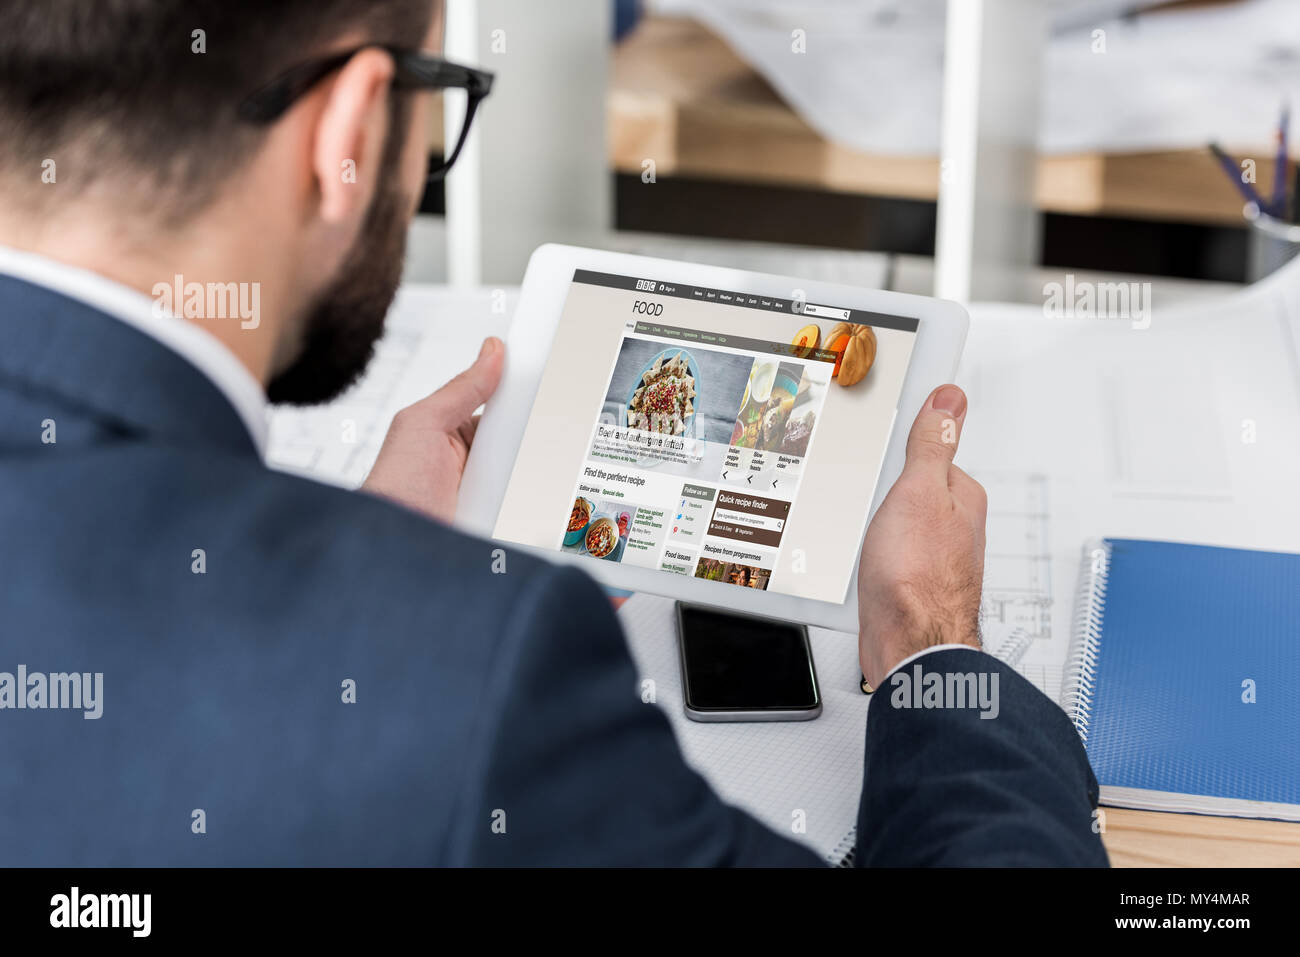 Businessman holding tablet with loaded bbc food page stock photo businessman holding tablet with loaded bbc food page forumfinder Image collections